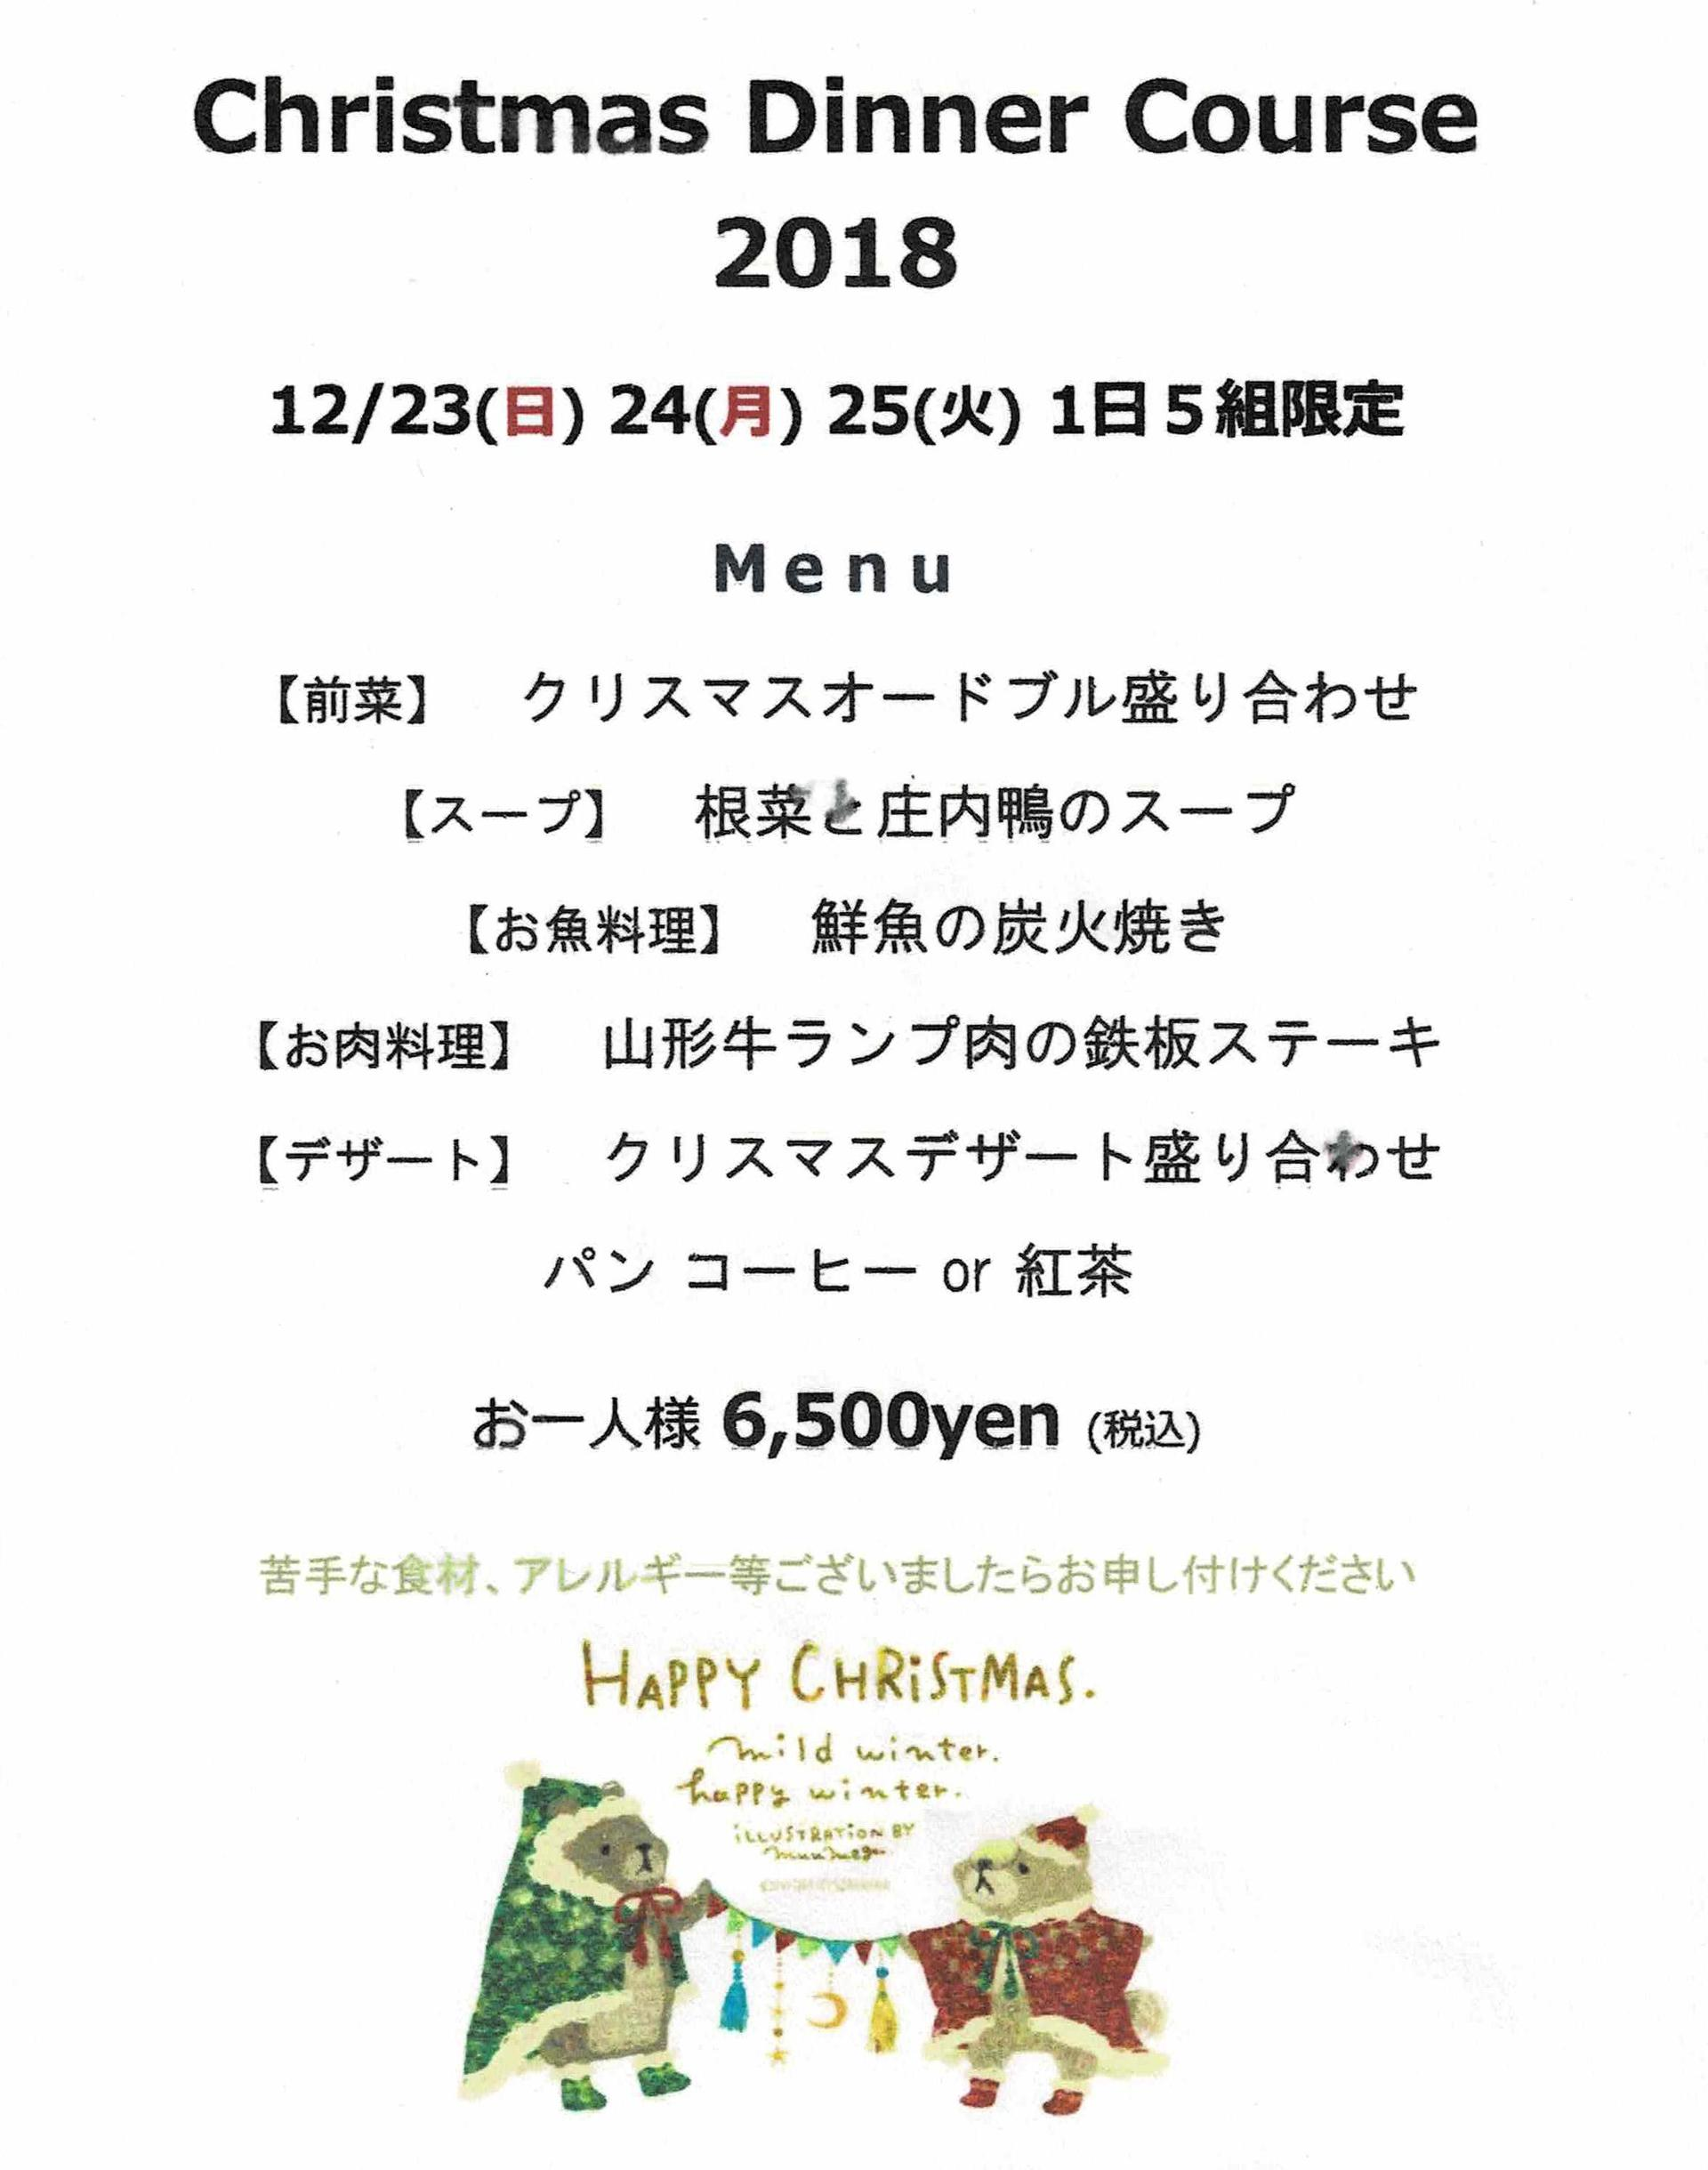 christmas dinner course 2018 2018 12 07 鶴岡市で人気の